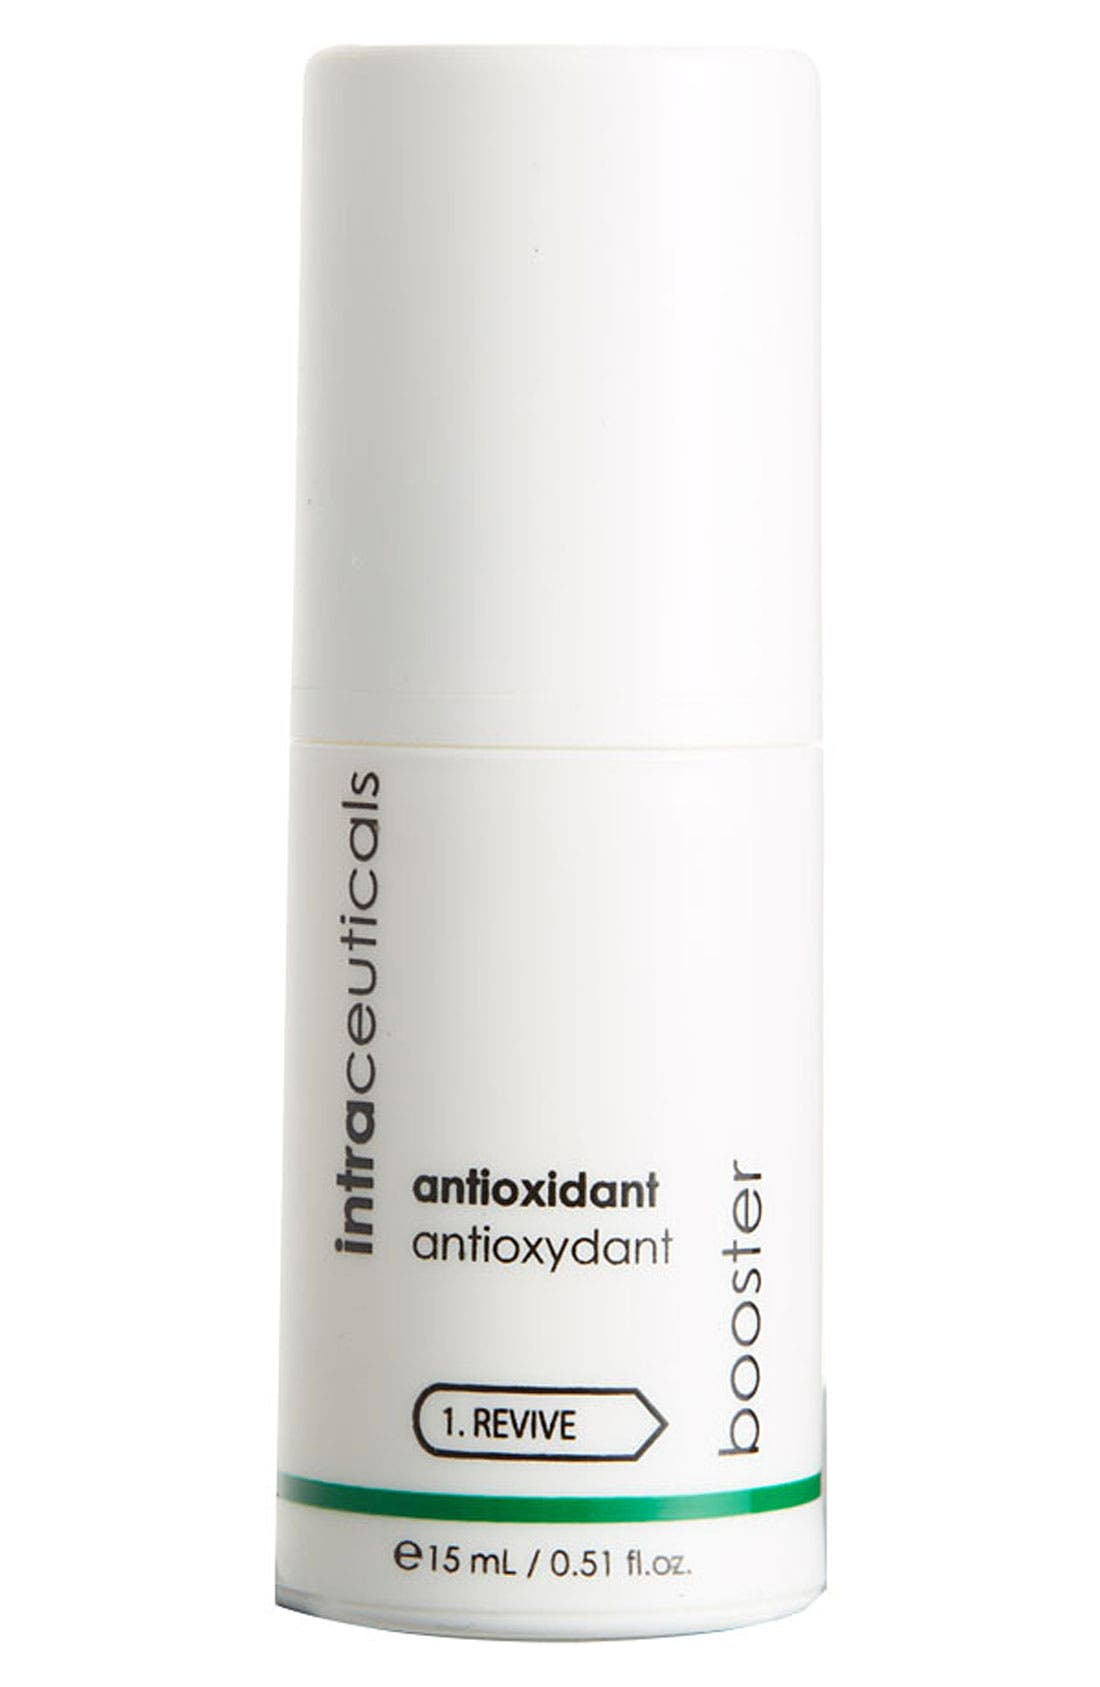 intraceuticals® 'Booster' Antioxidant Serum